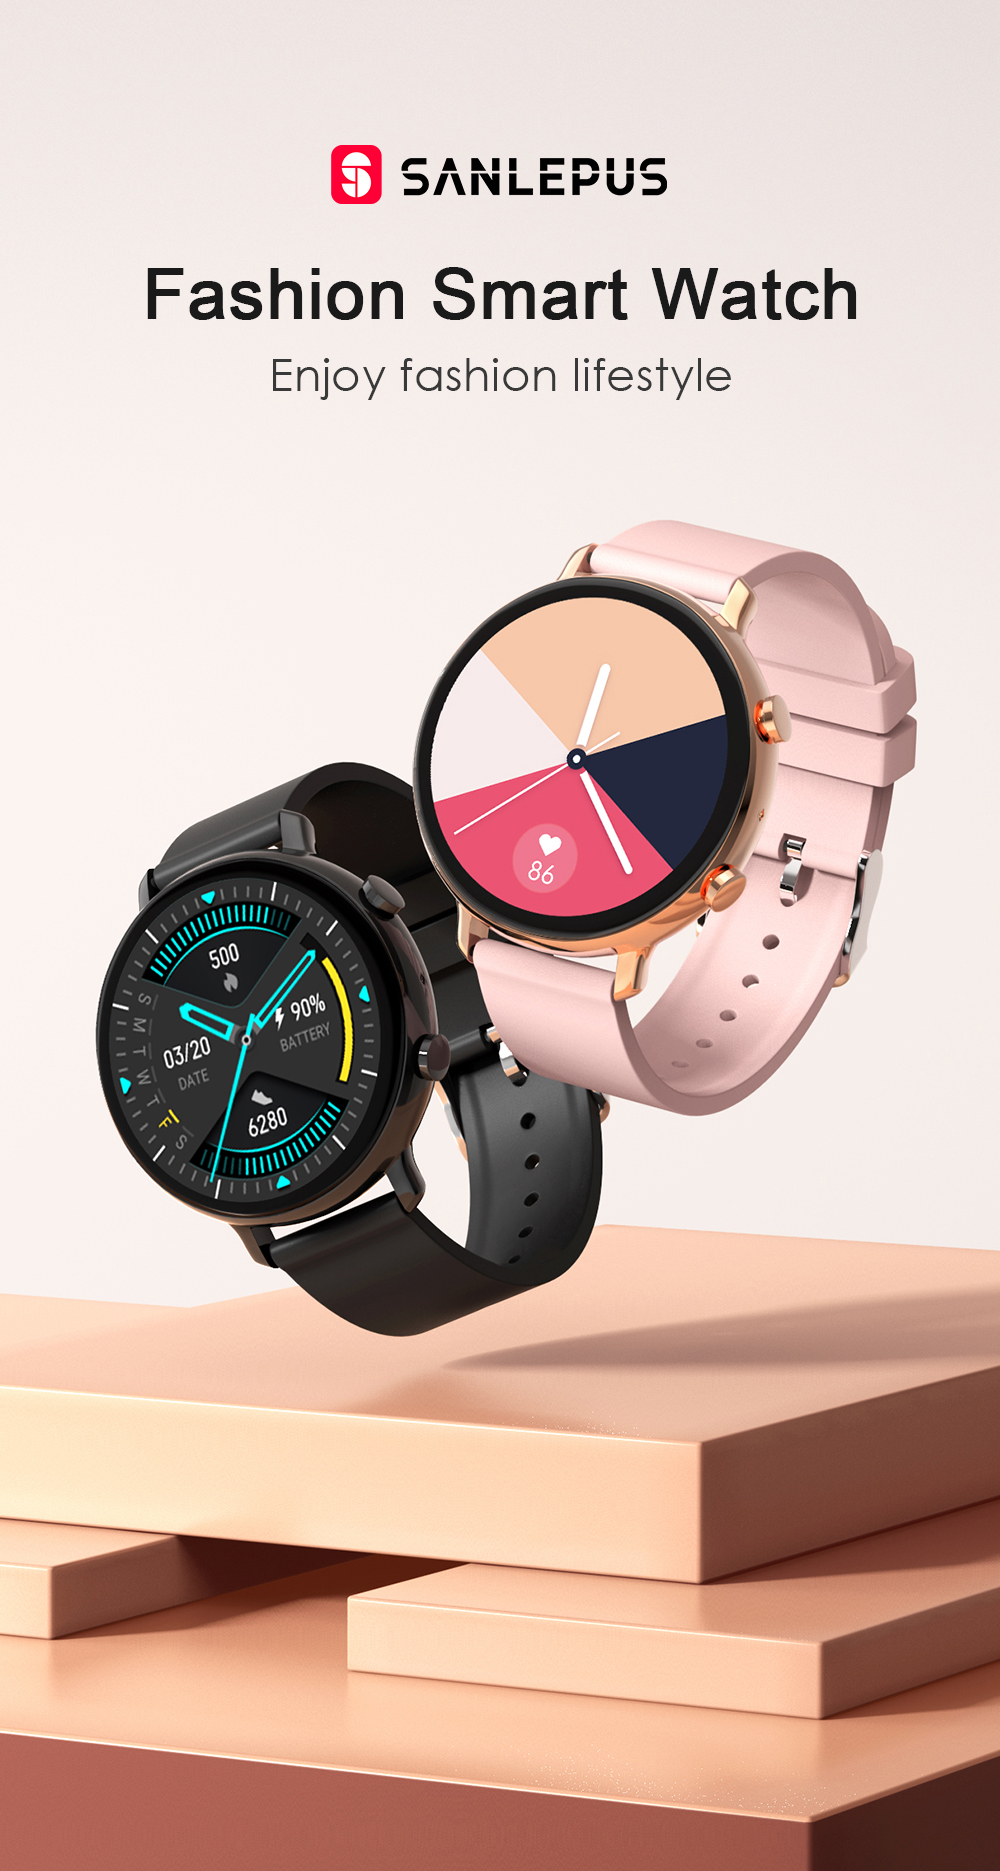 Hf9fd4c3bc69143058142063116e1bf2dy SANLEPUS ECG PPG Smart Watch With Dial Calls 2021 New Men Women Smartwatch Blood Pressure Monitor For Android Samsung Apple